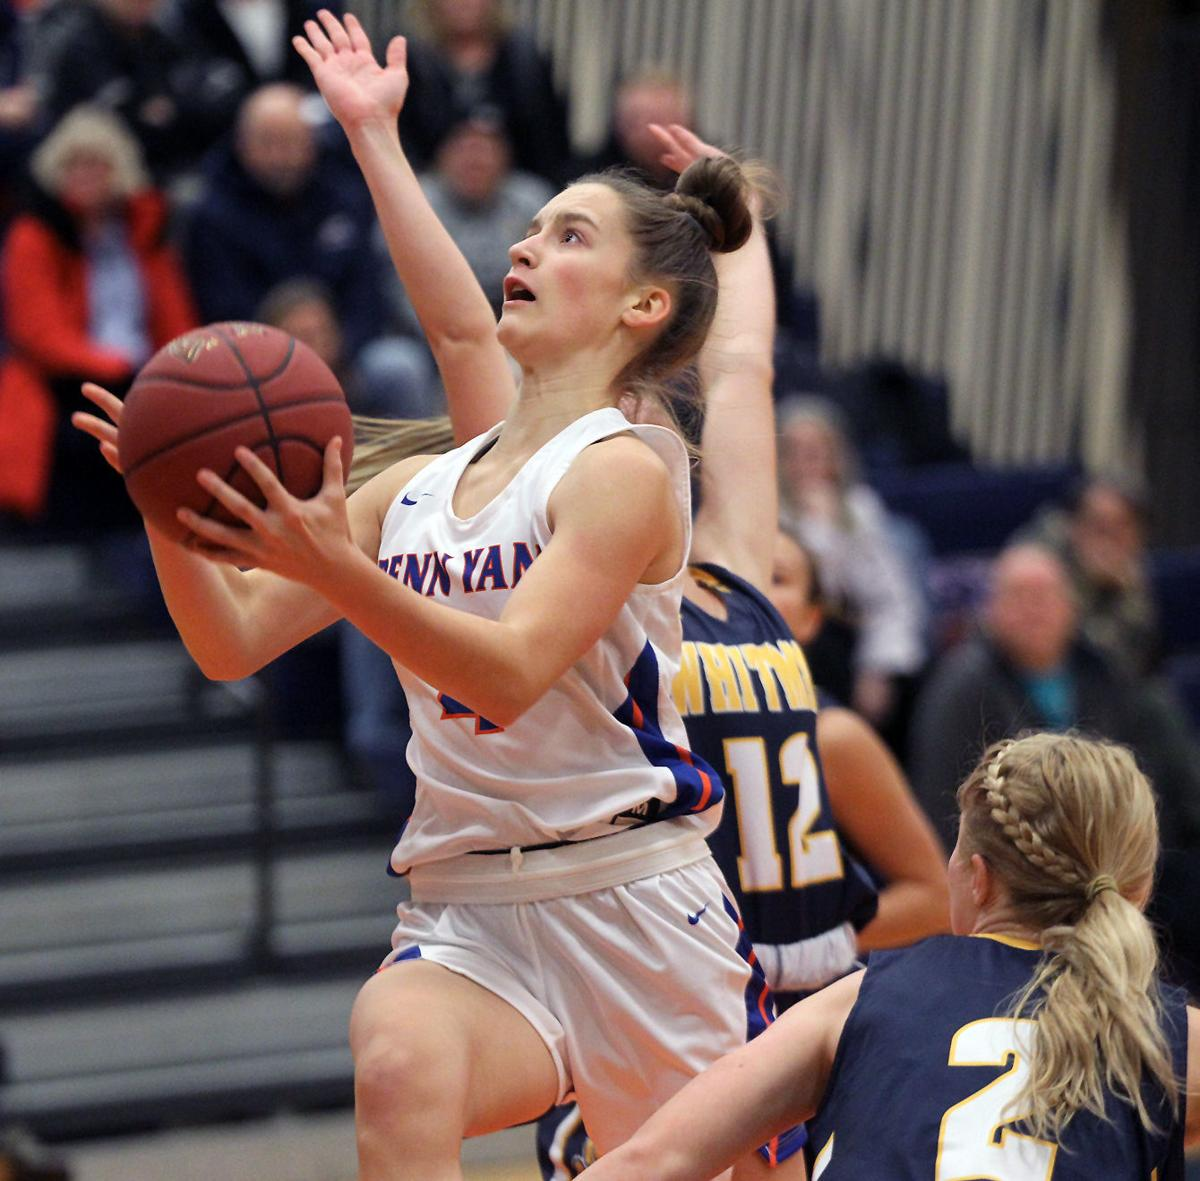 Penn Yan girls preview